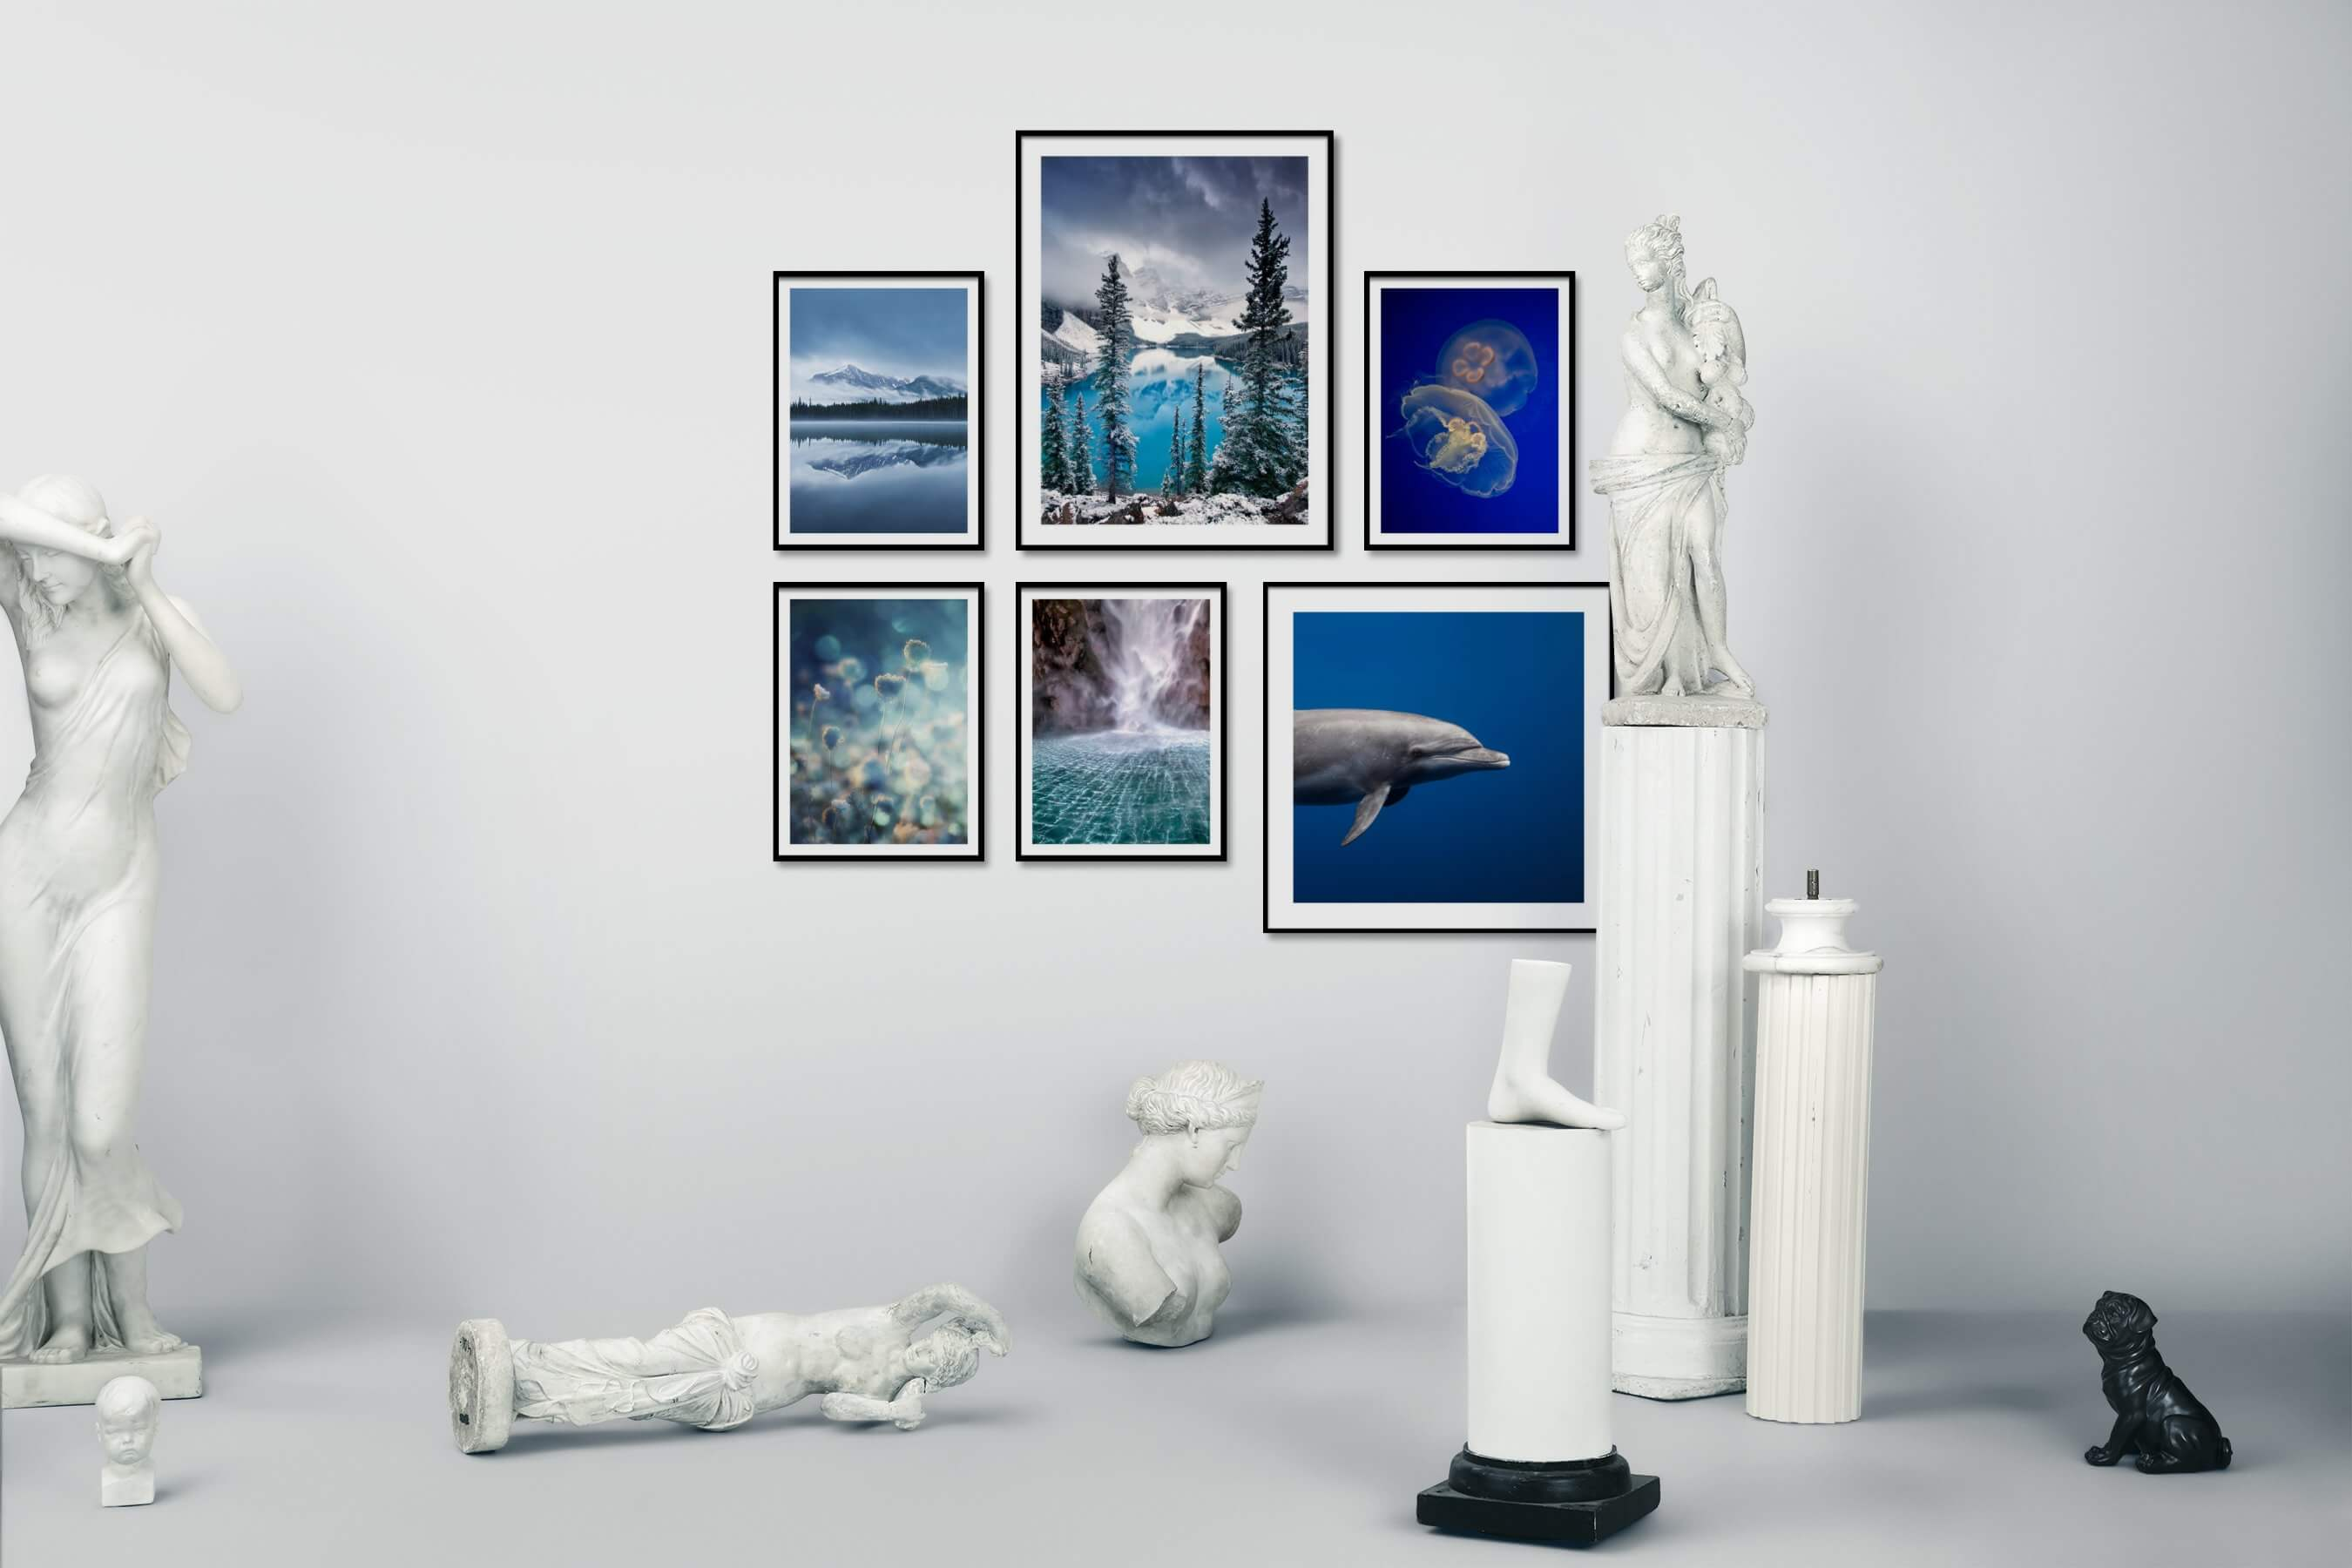 Gallery wall idea with six framed pictures arranged on a wall depicting Nature, For the Moderate, Flowers & Plants, For the Minimalist, Animals, and Beach & Water